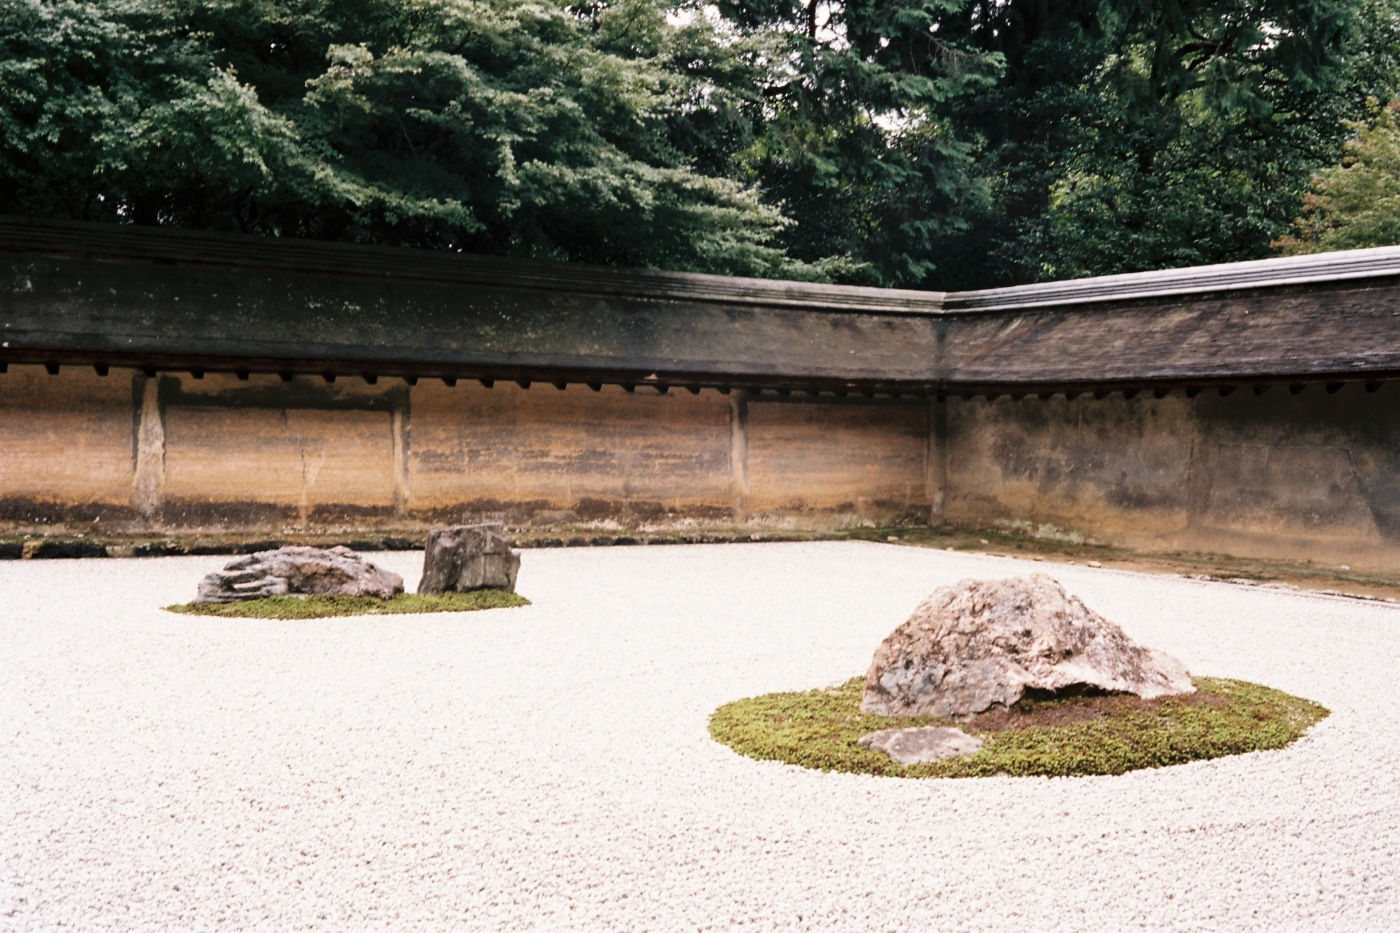 Garden at Ryoan-ji temple - Portra 160